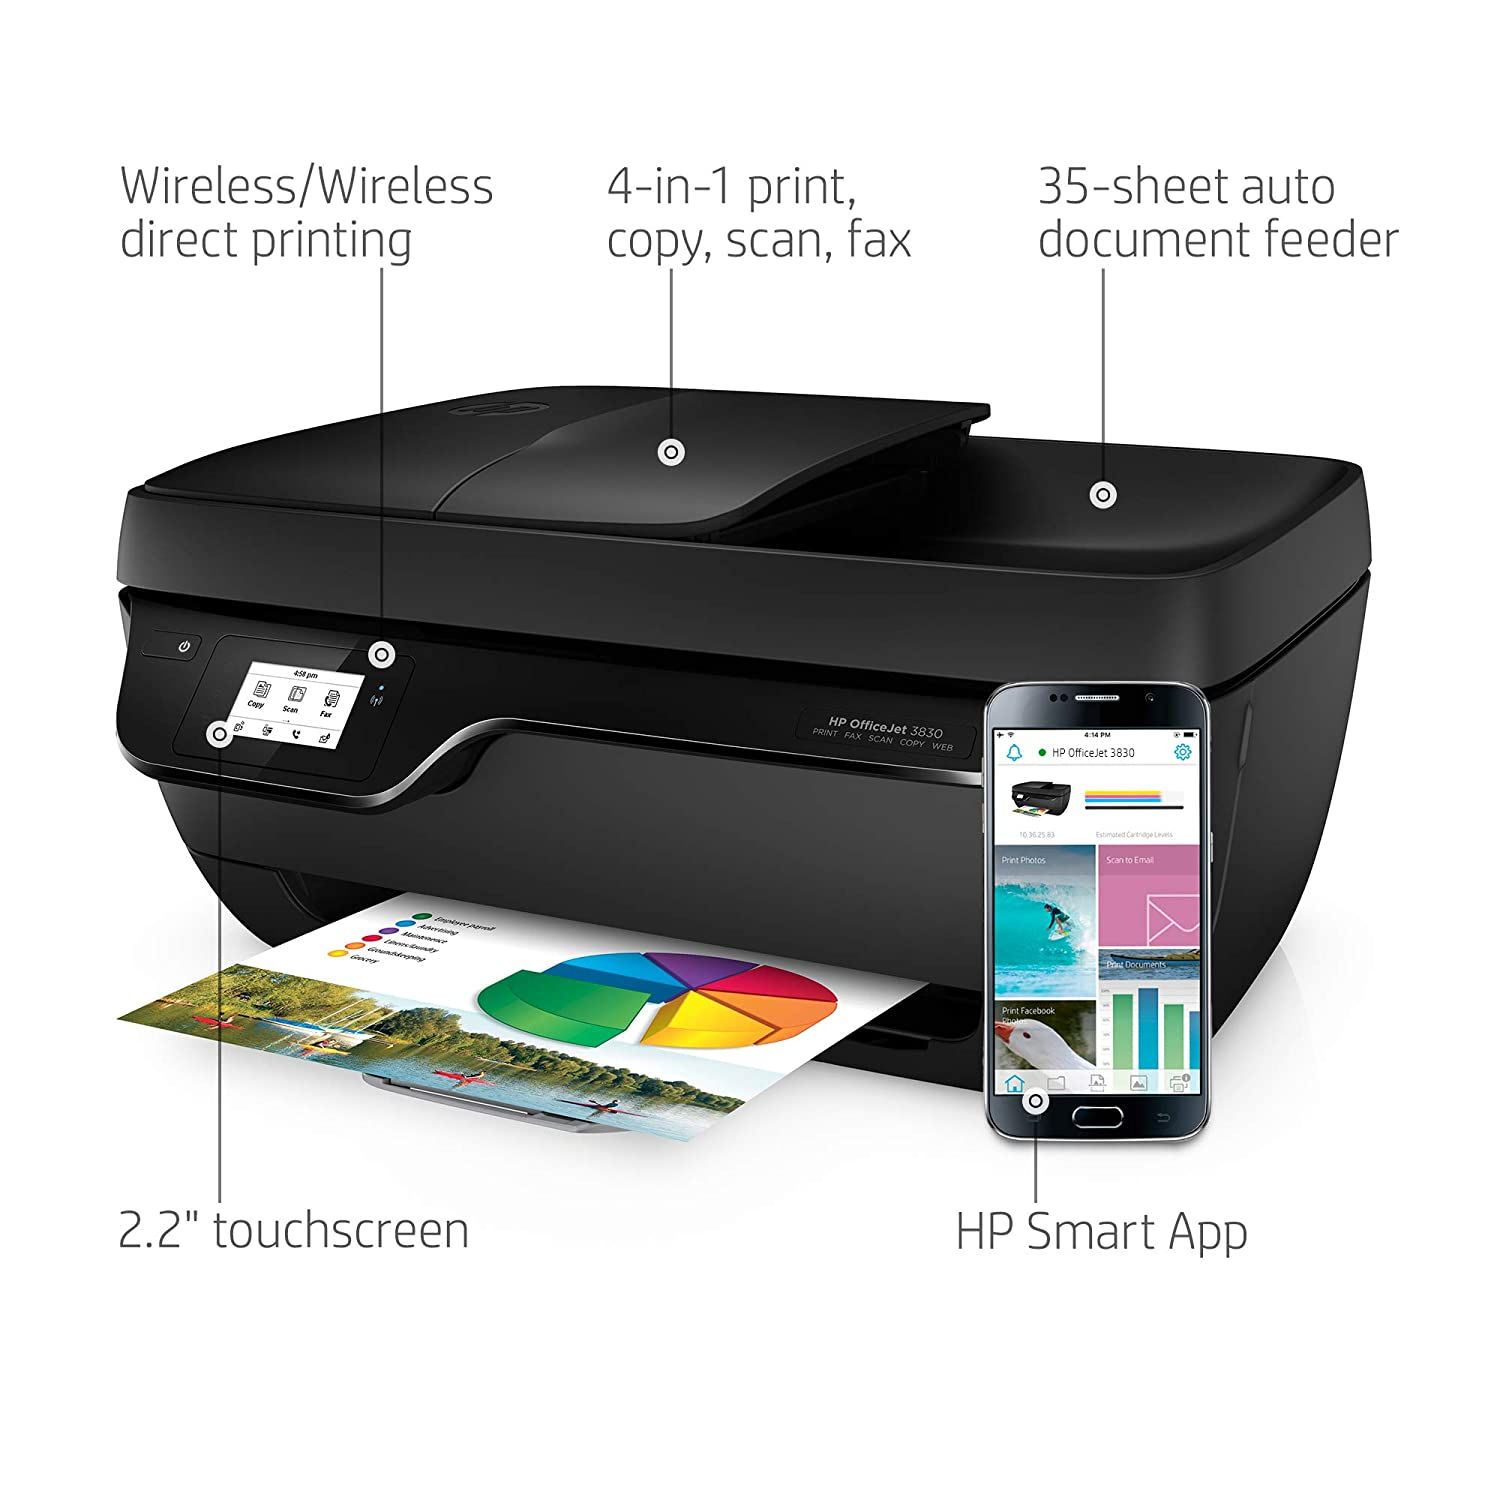 HP OfficeJet Wireless Printer.